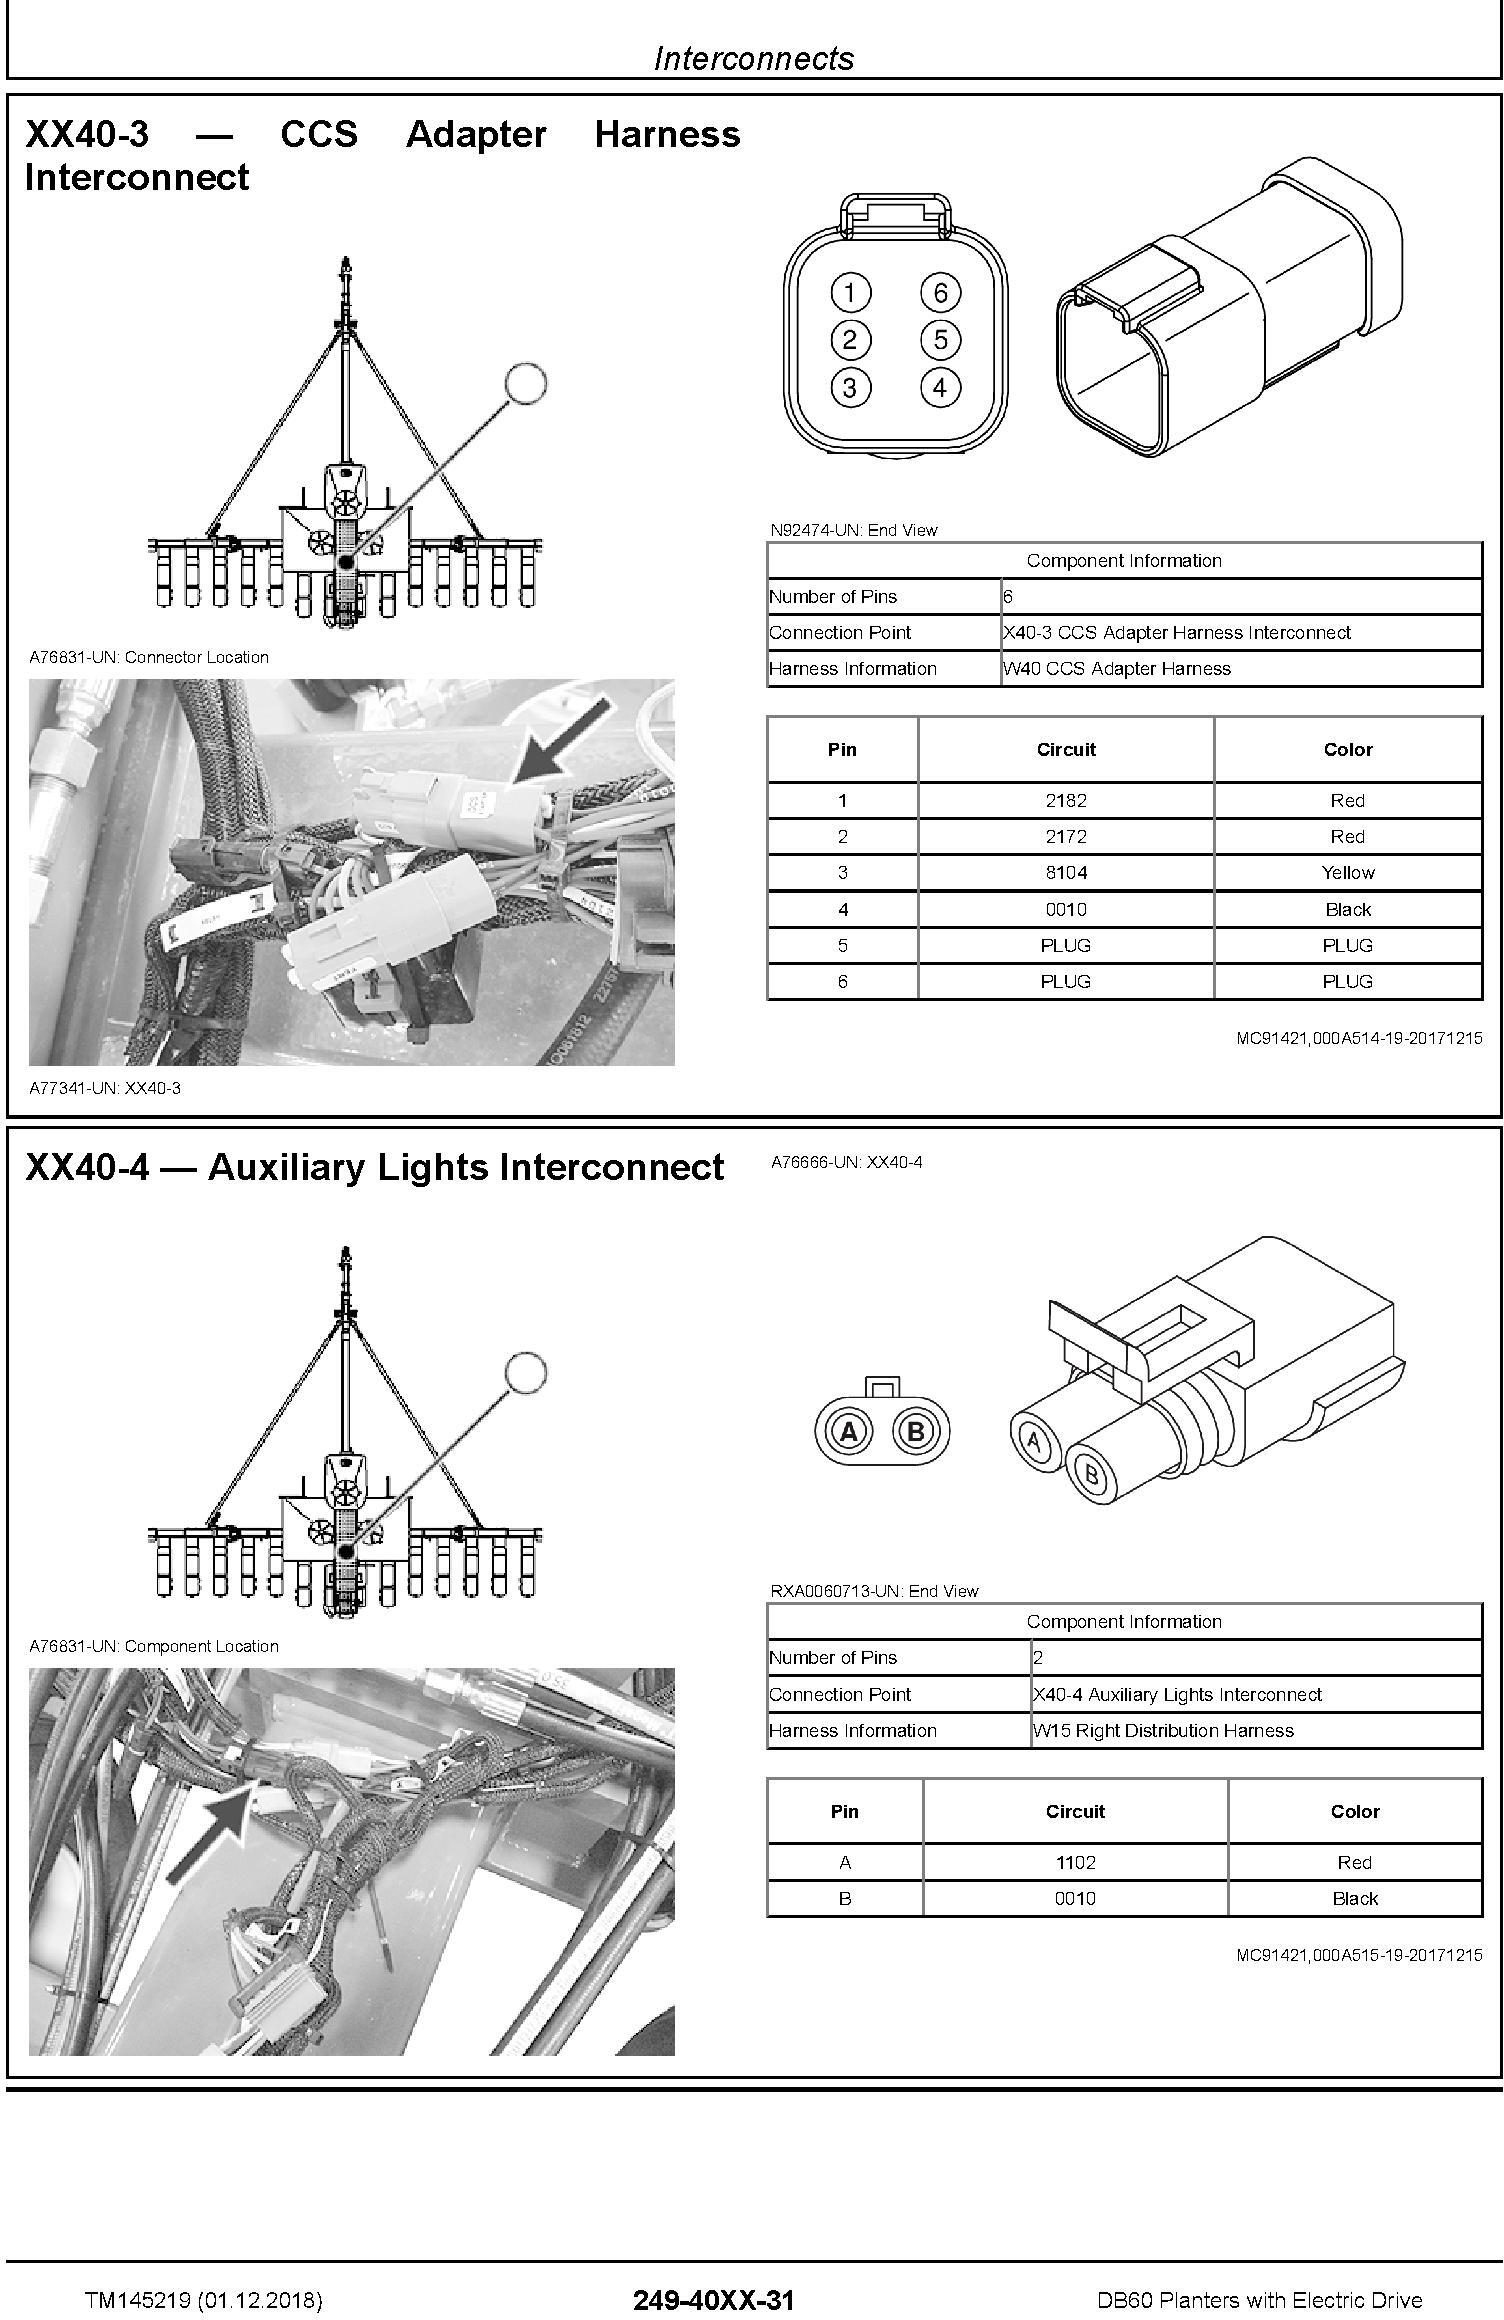 John Deere DB60 Planters with Electric Drive Diagnostic (SN.775100-) Technical Manual (TM145219) - 1